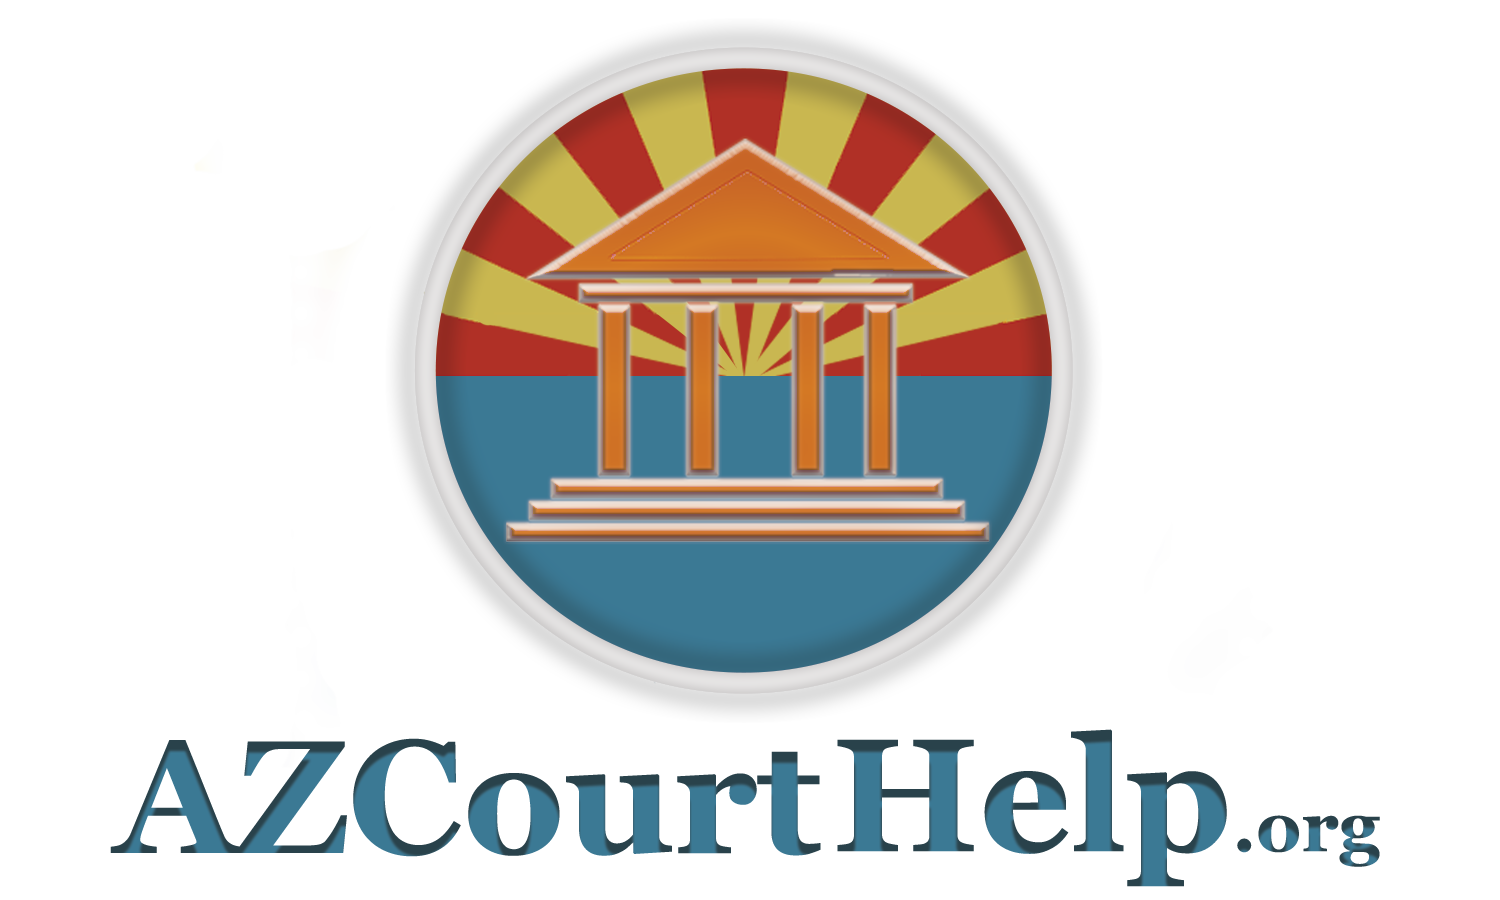 AzCourthelp.org